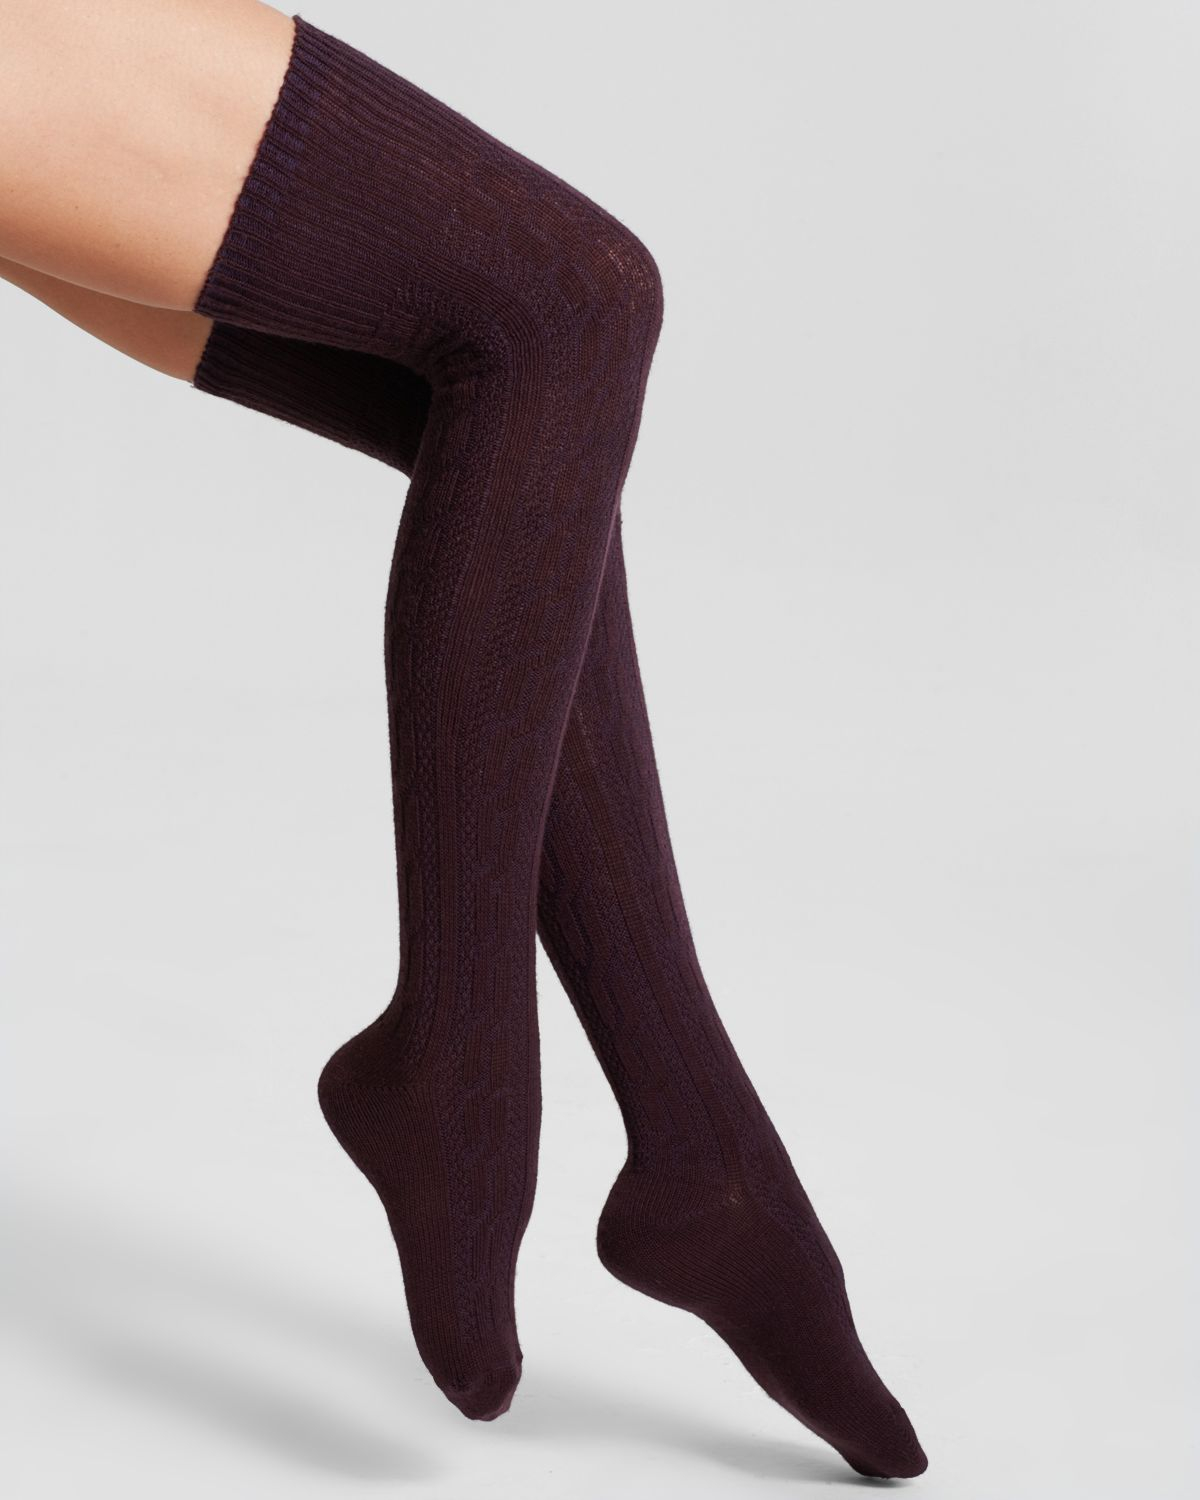 95d871259 Hue Chunky Cable Knit Over-The-Knee Socks in Brown - Lyst